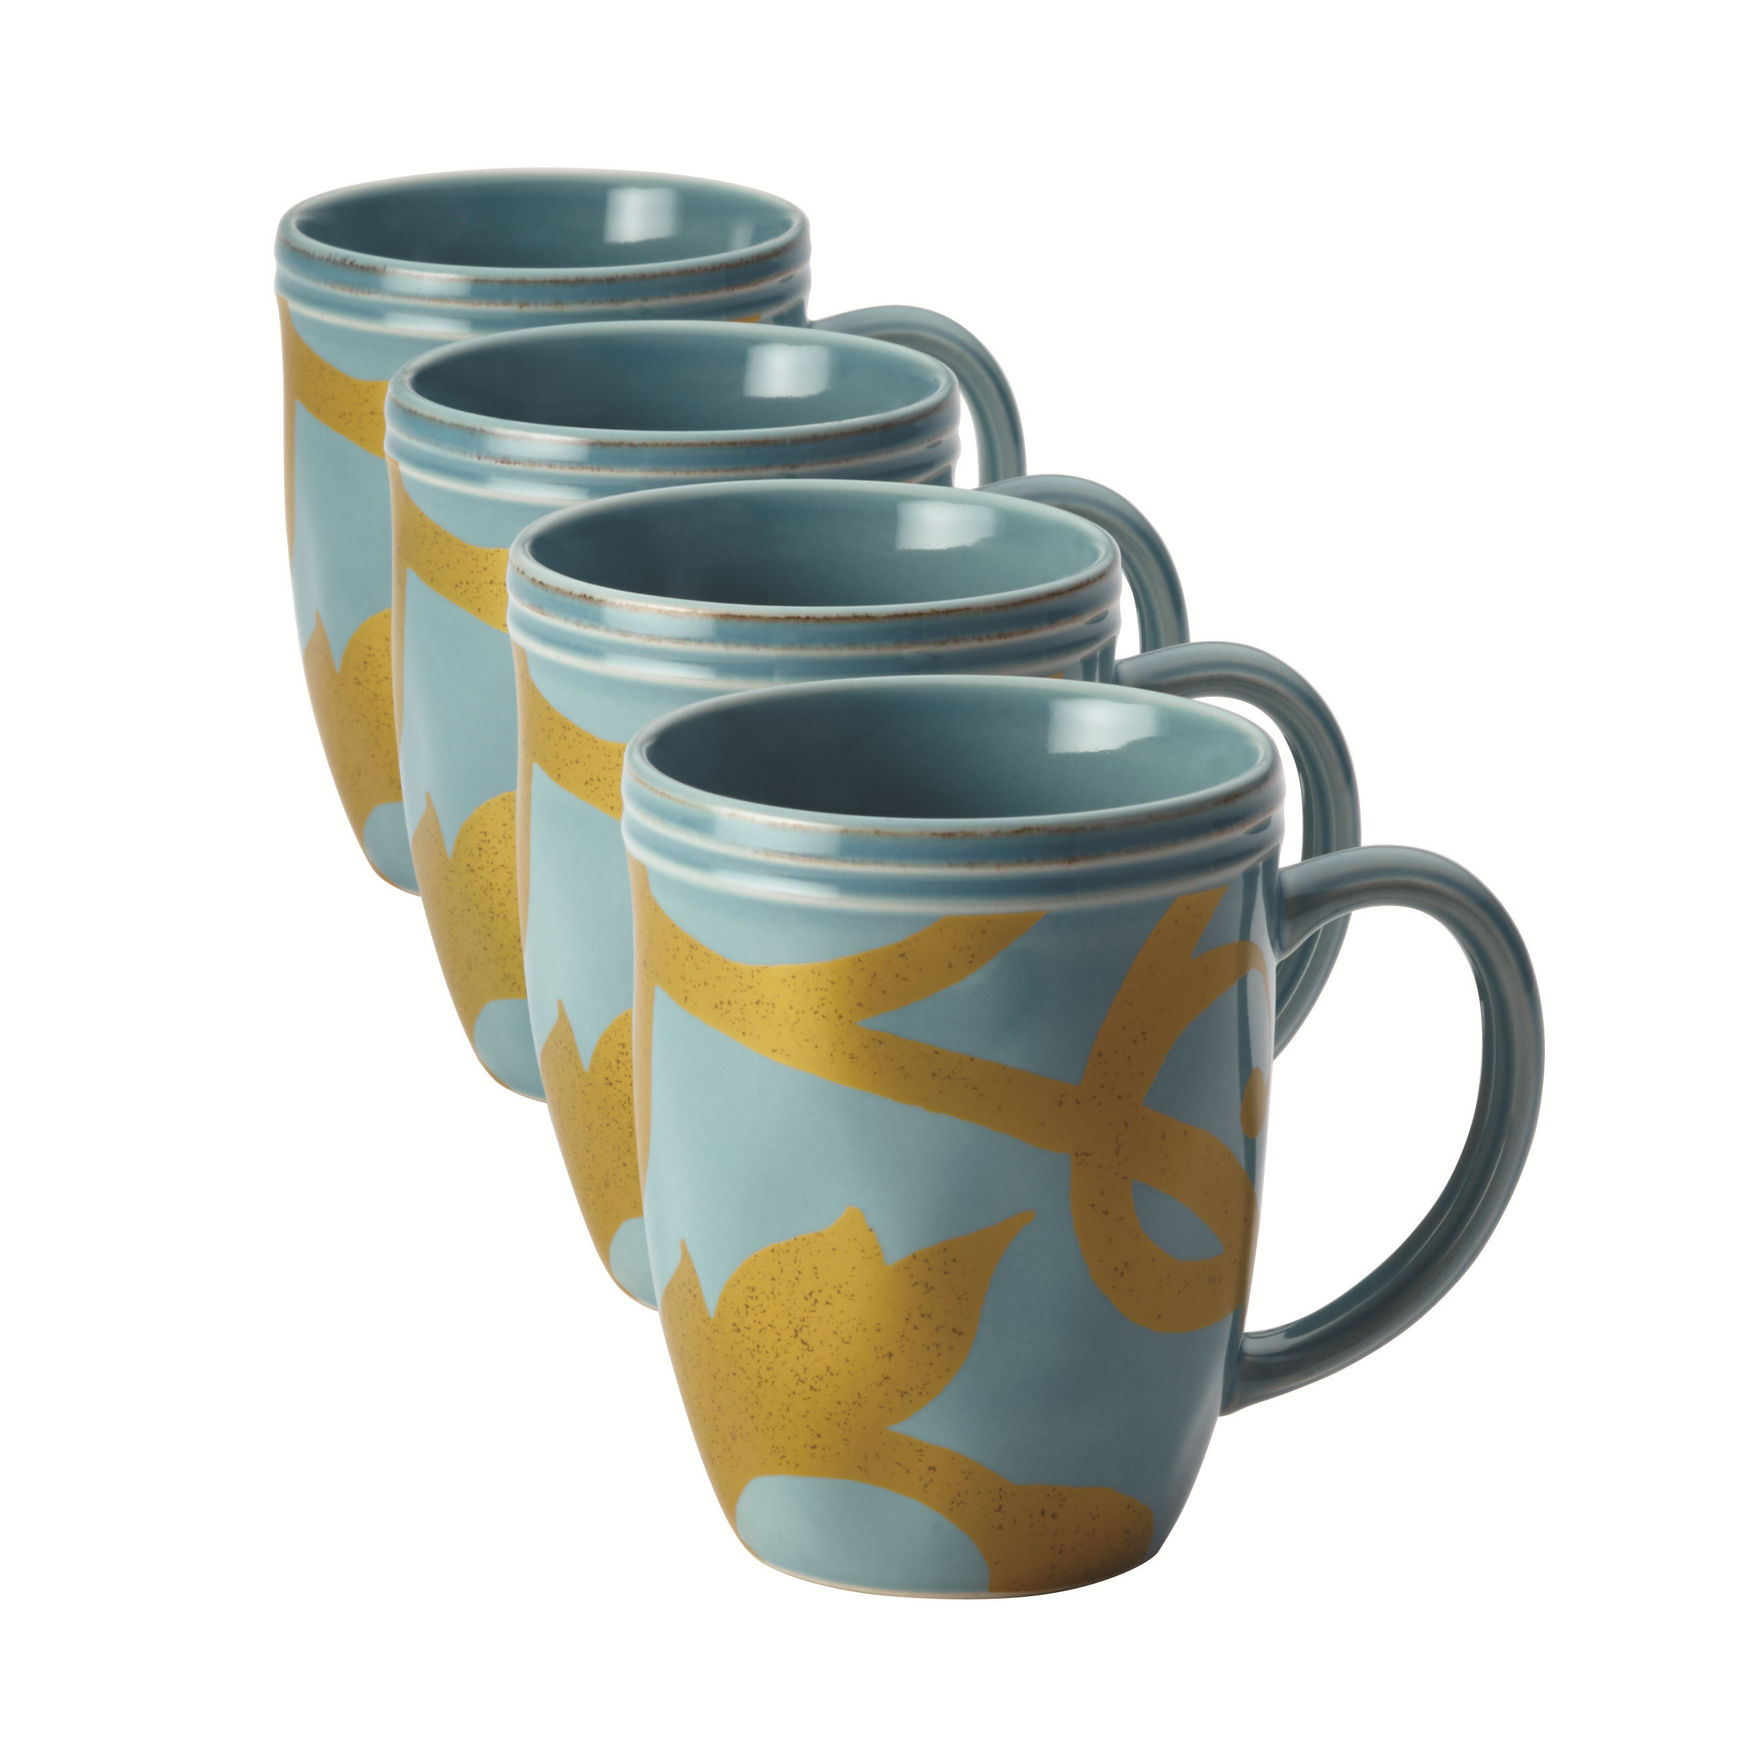 Rachael Ray Blue Mugs Drinkware